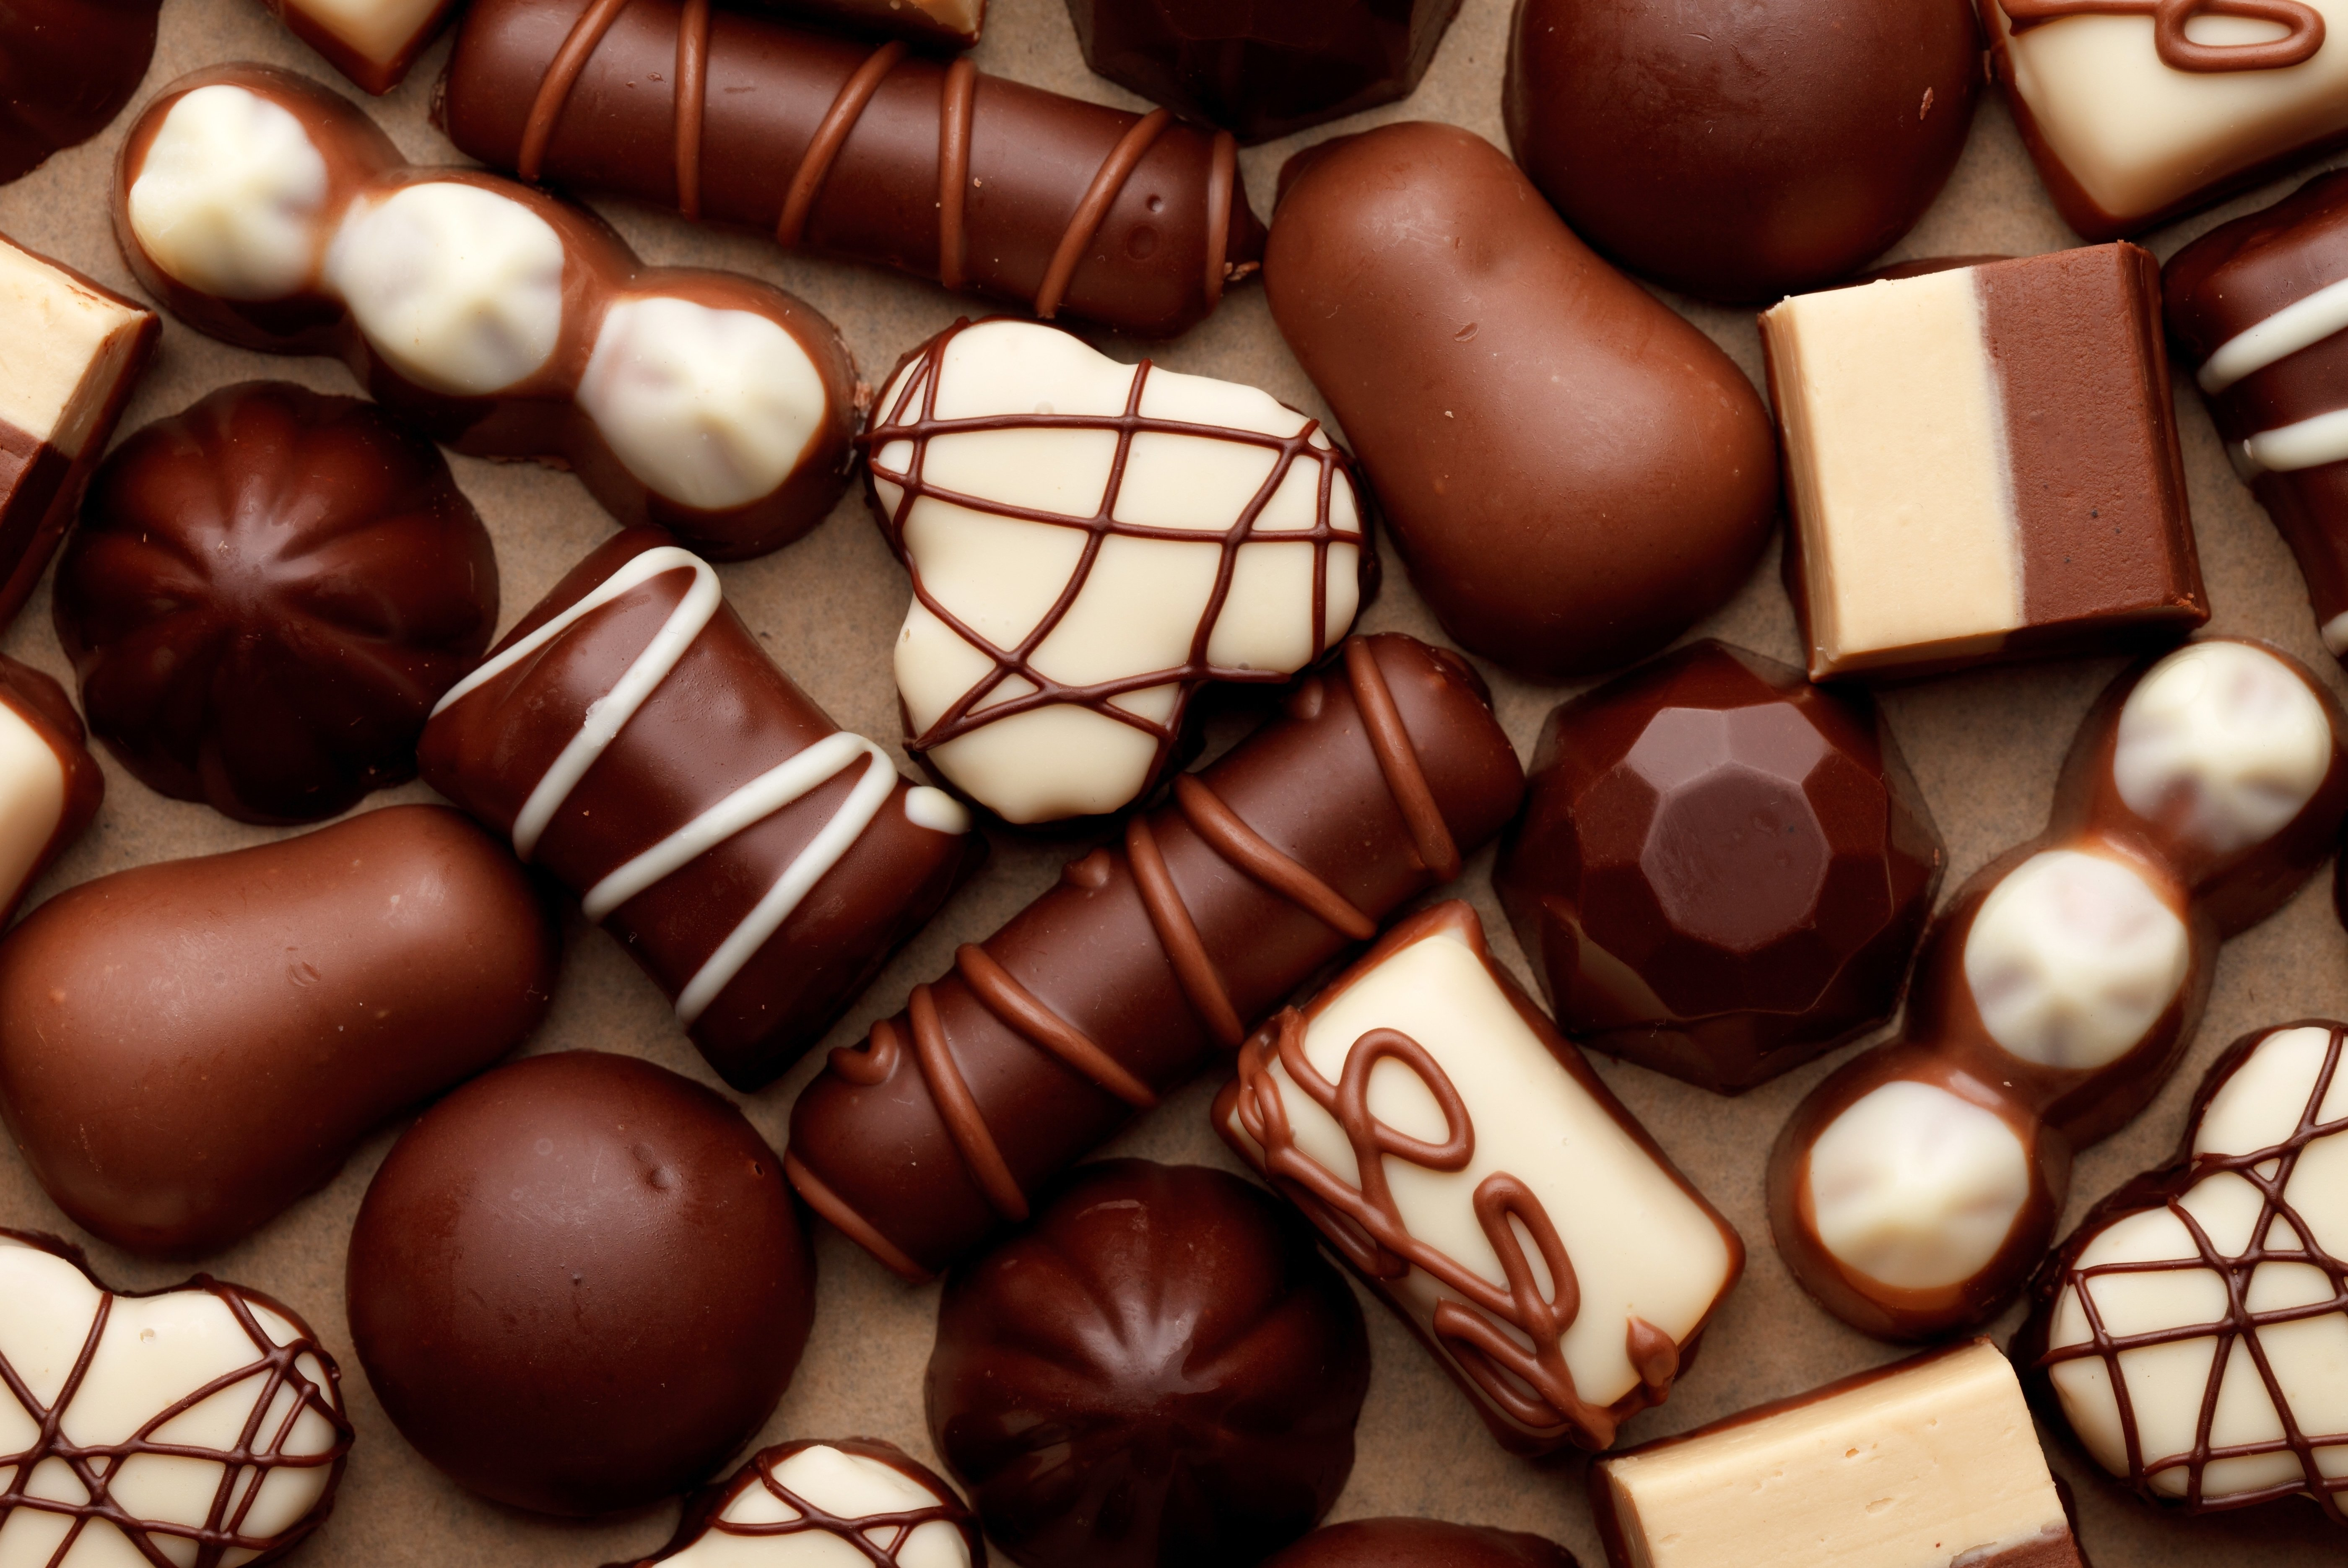 wallpaper Chocolate Chocolate candy download photo wallpapers 5600x3740